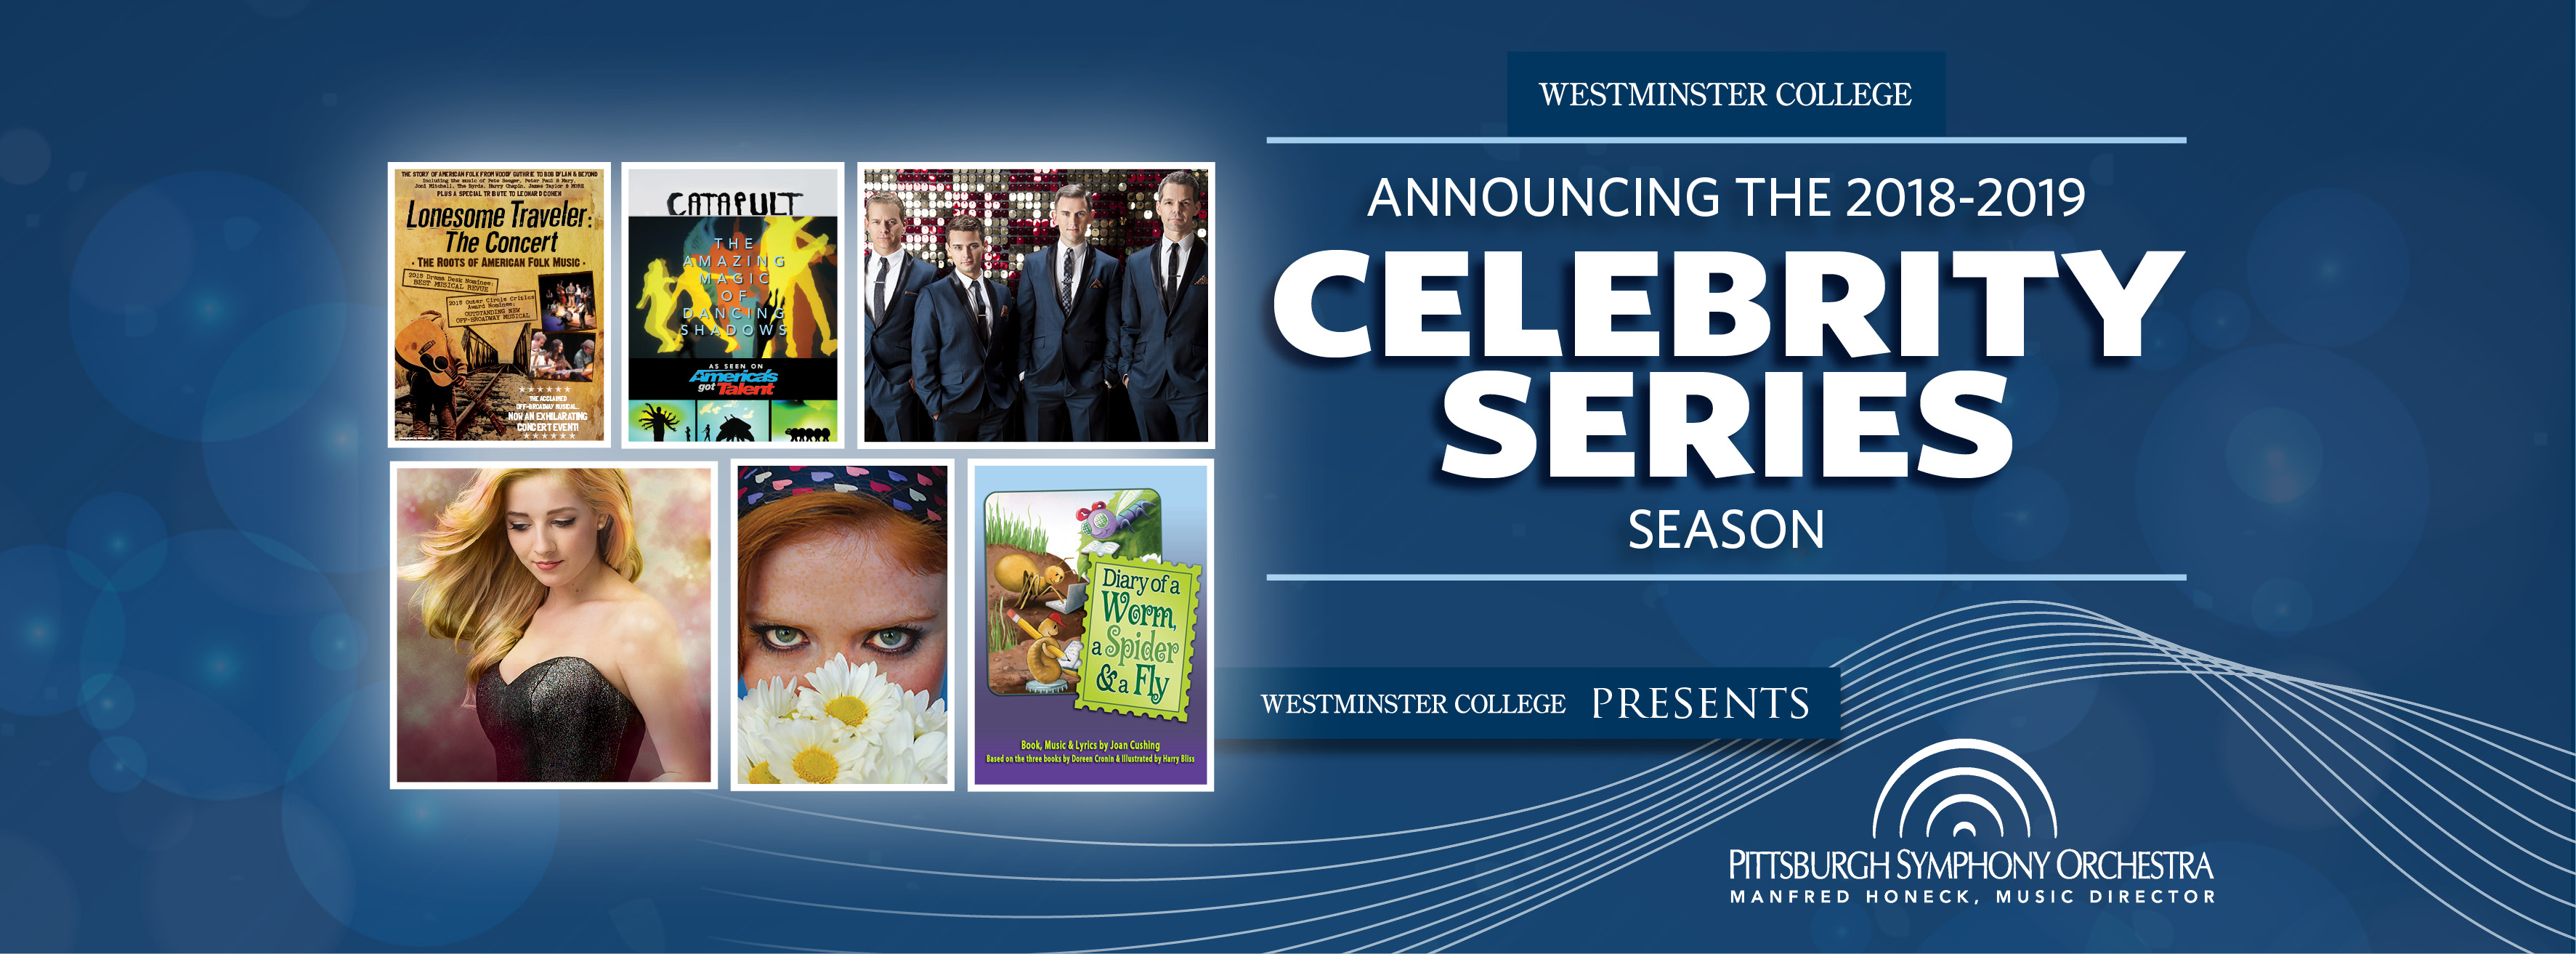 Events and Performances | Westminster College | SLC, UT